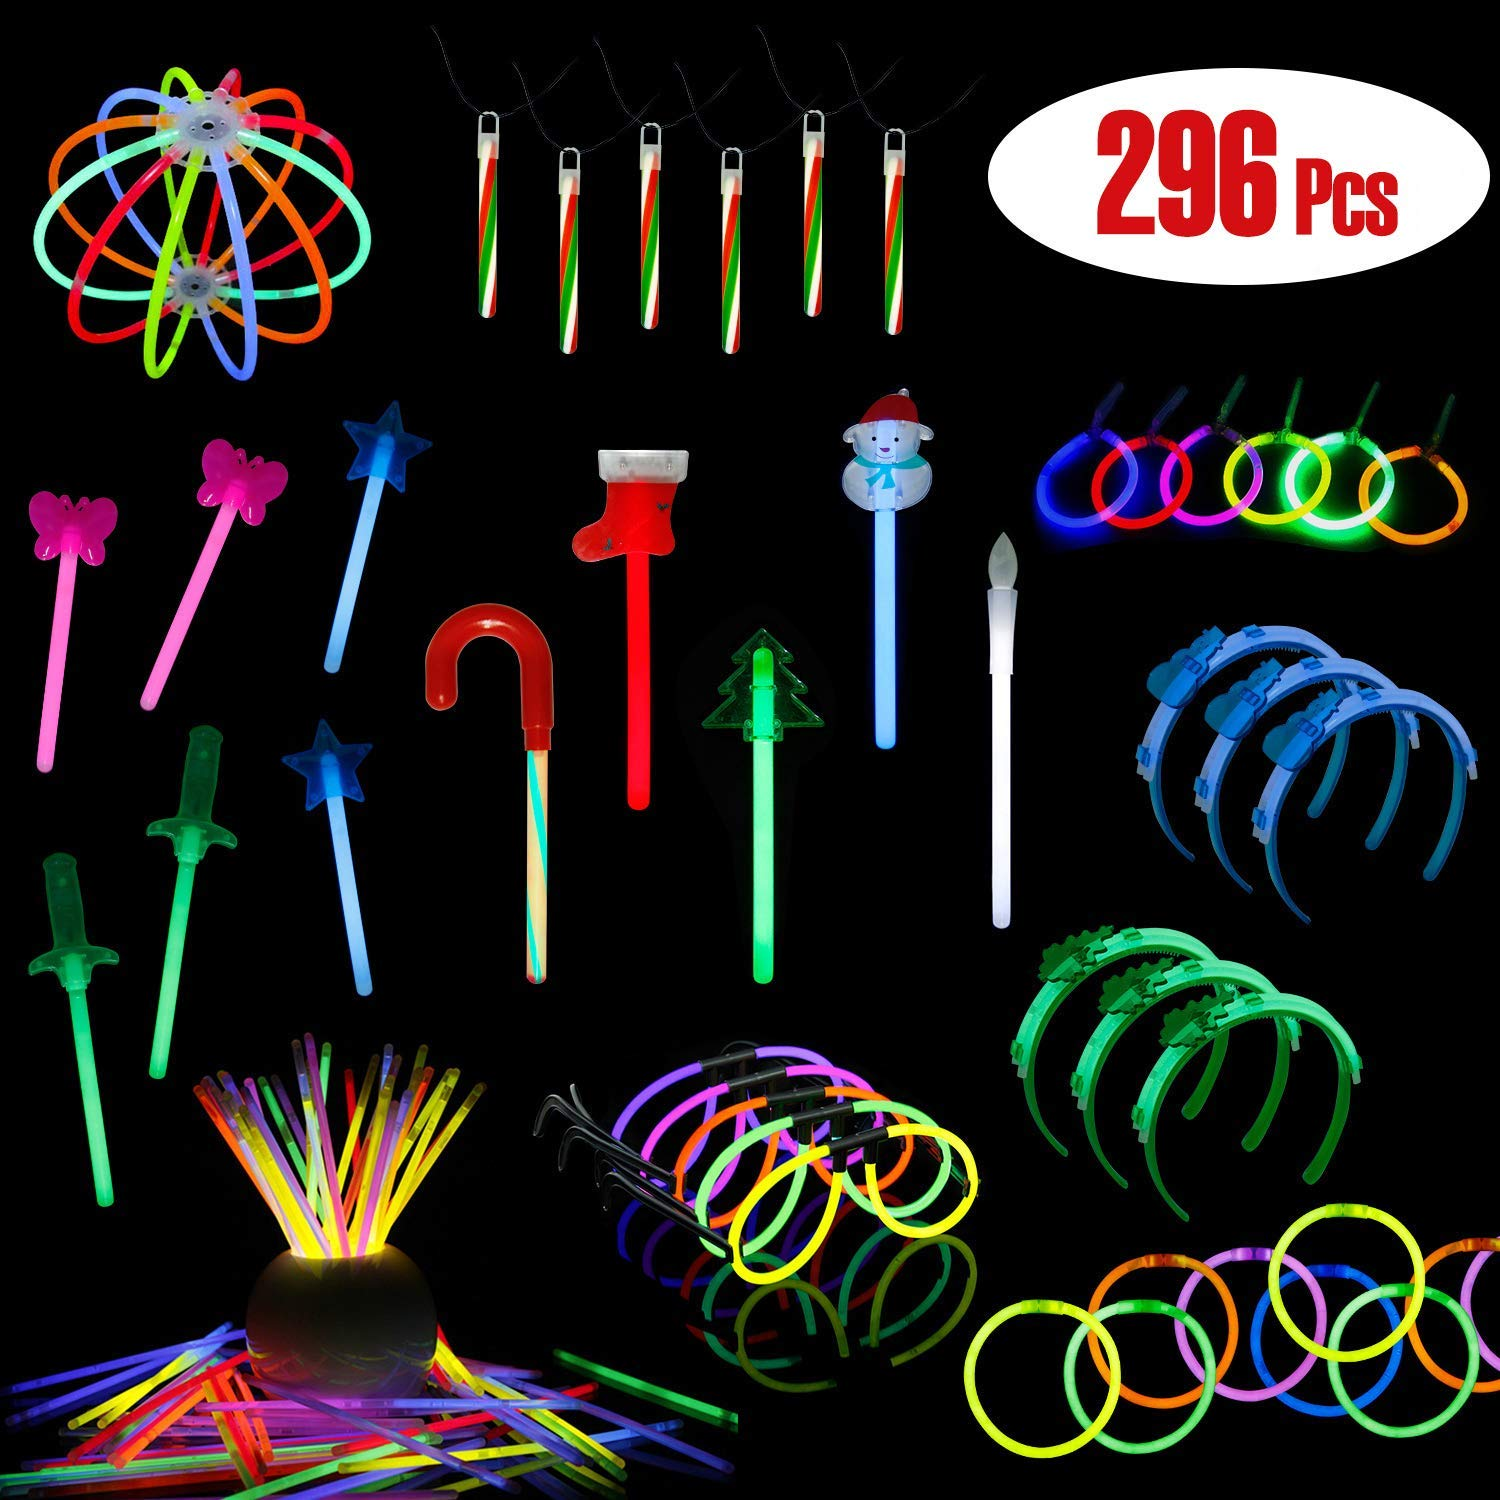 LaRibbons Christmas Glow-in Dark Party Supplies, 296 Pack Glow Sticks in Bulk, Christmas Themed Designer ( Snowman, Christmas Tree, Stocking ) Bracelets, Necklace, Glasses, Magic Wands and More